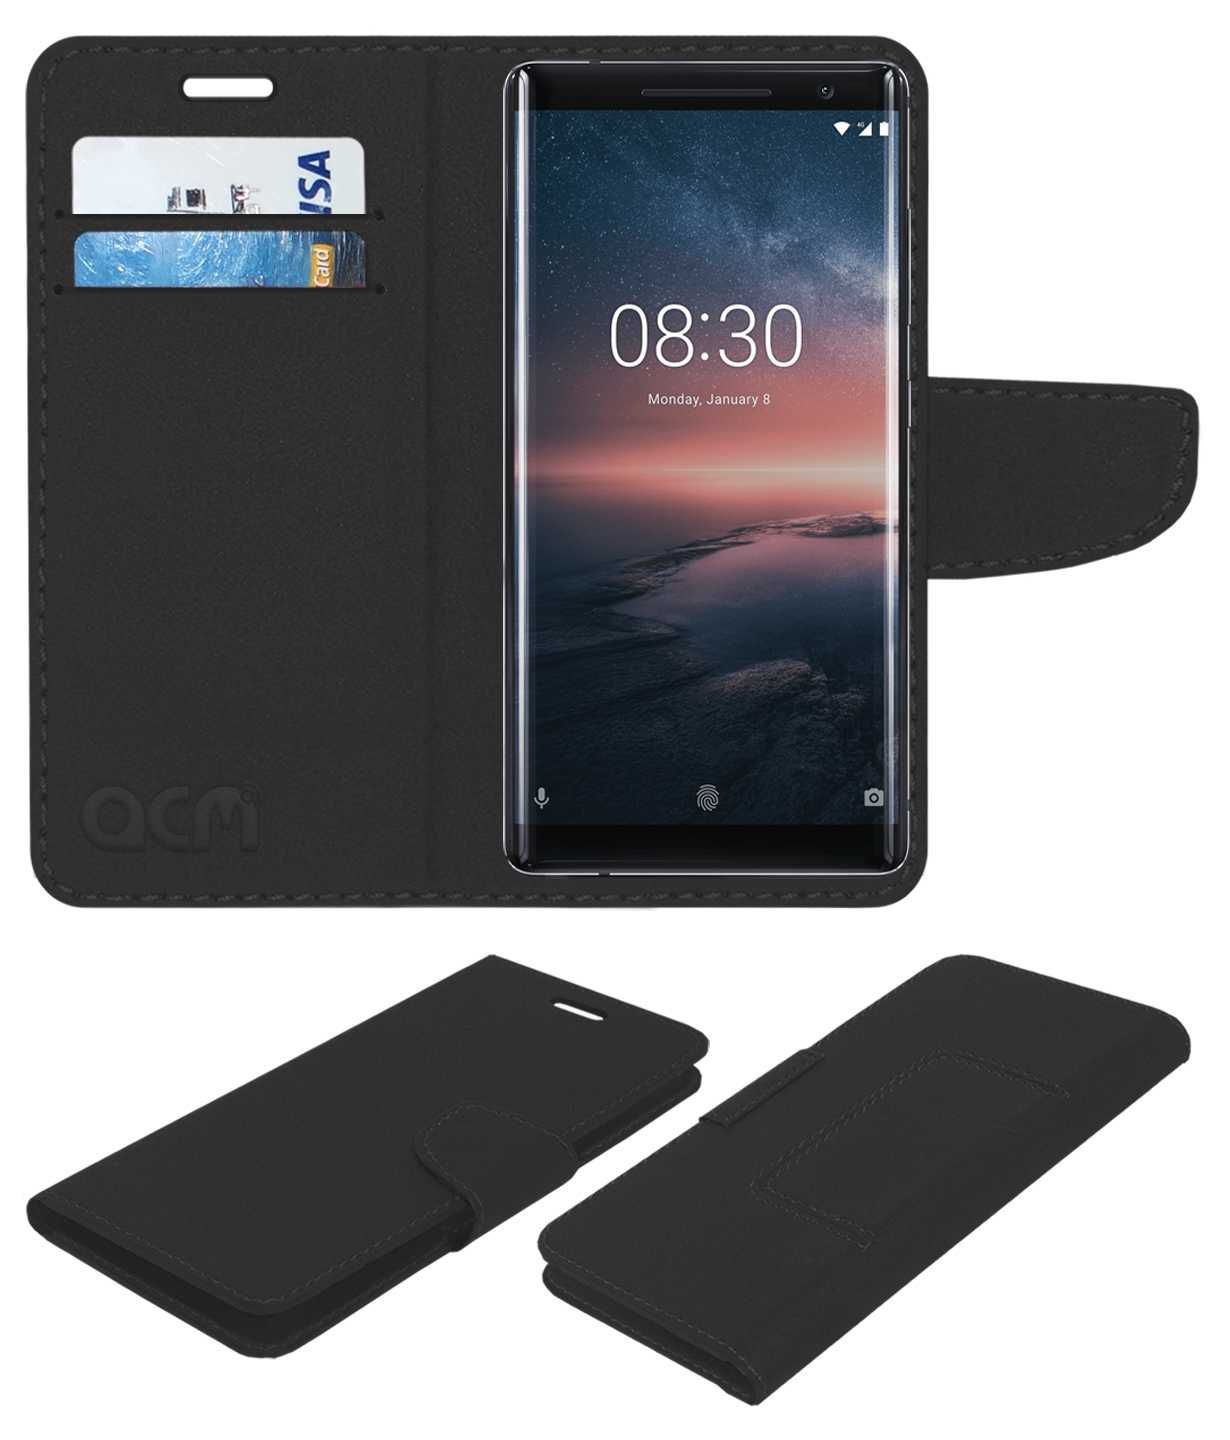 online store 3f420 3465f NOKIA 8 SIROCCO Flip Cover by ACM - Black